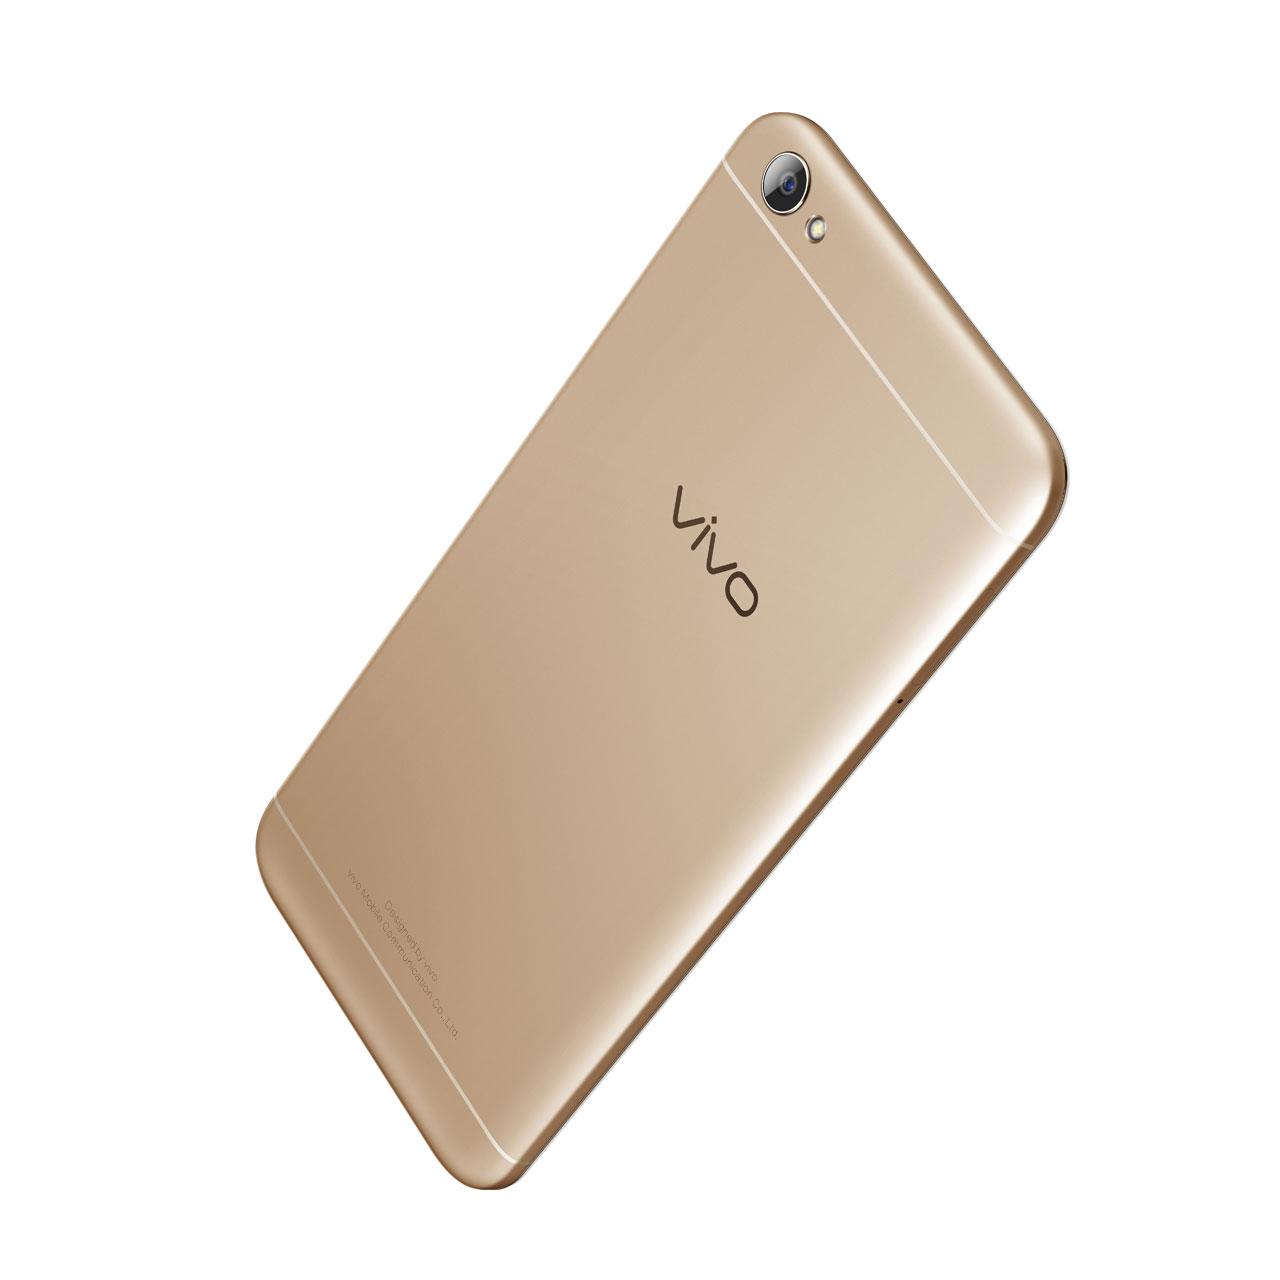 Vivo Y66 Photos Images And Wallpapers Mouthshut Com